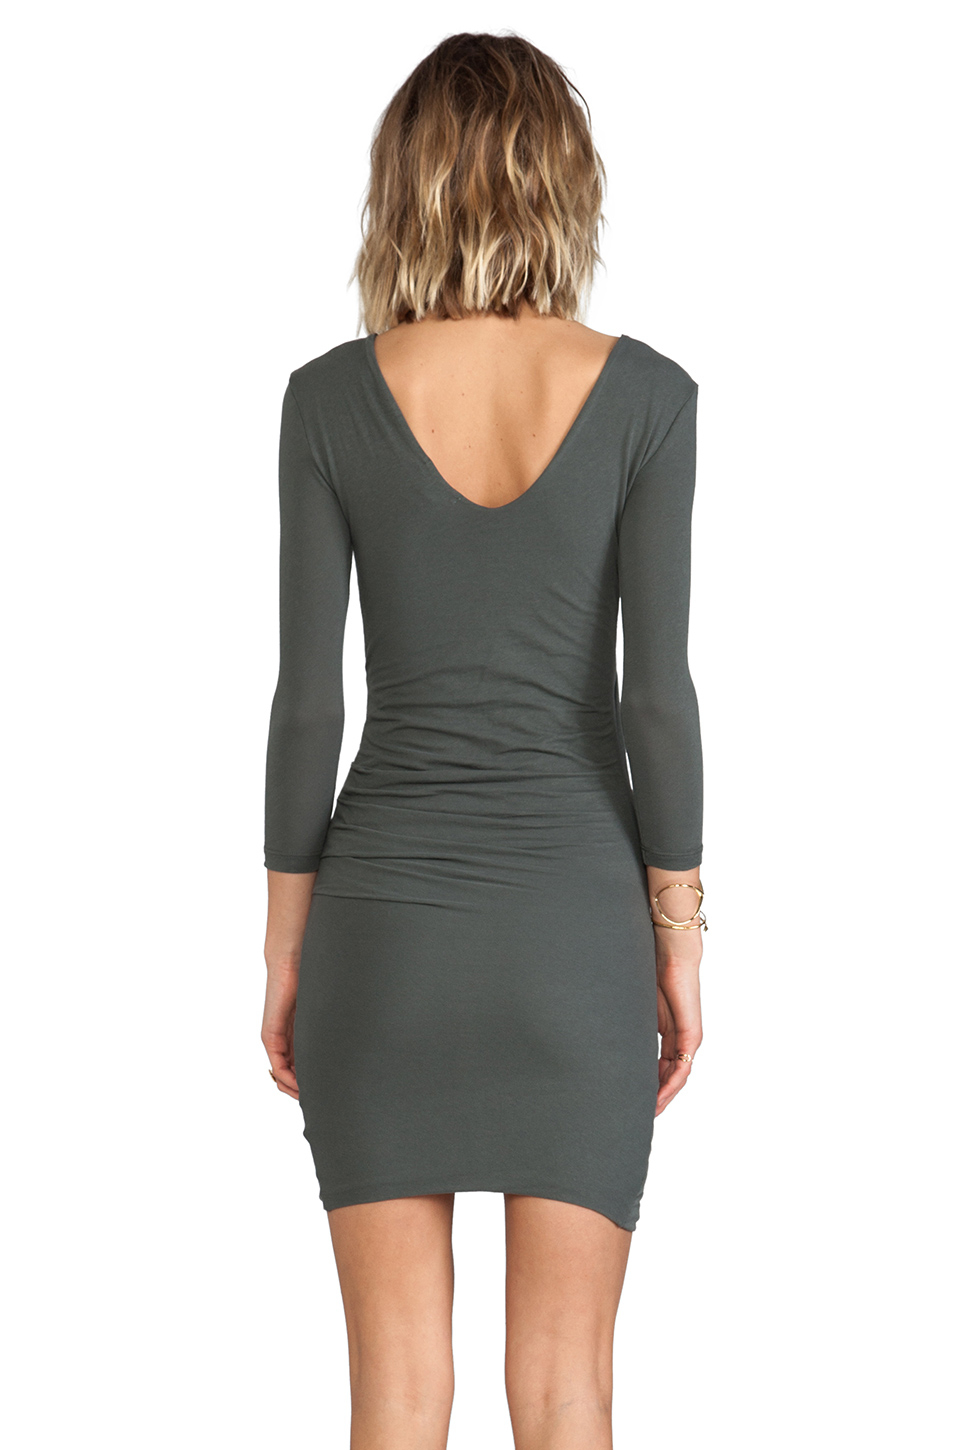 James Perse Skinny Wrap Tuck Dress In Forest Green Green